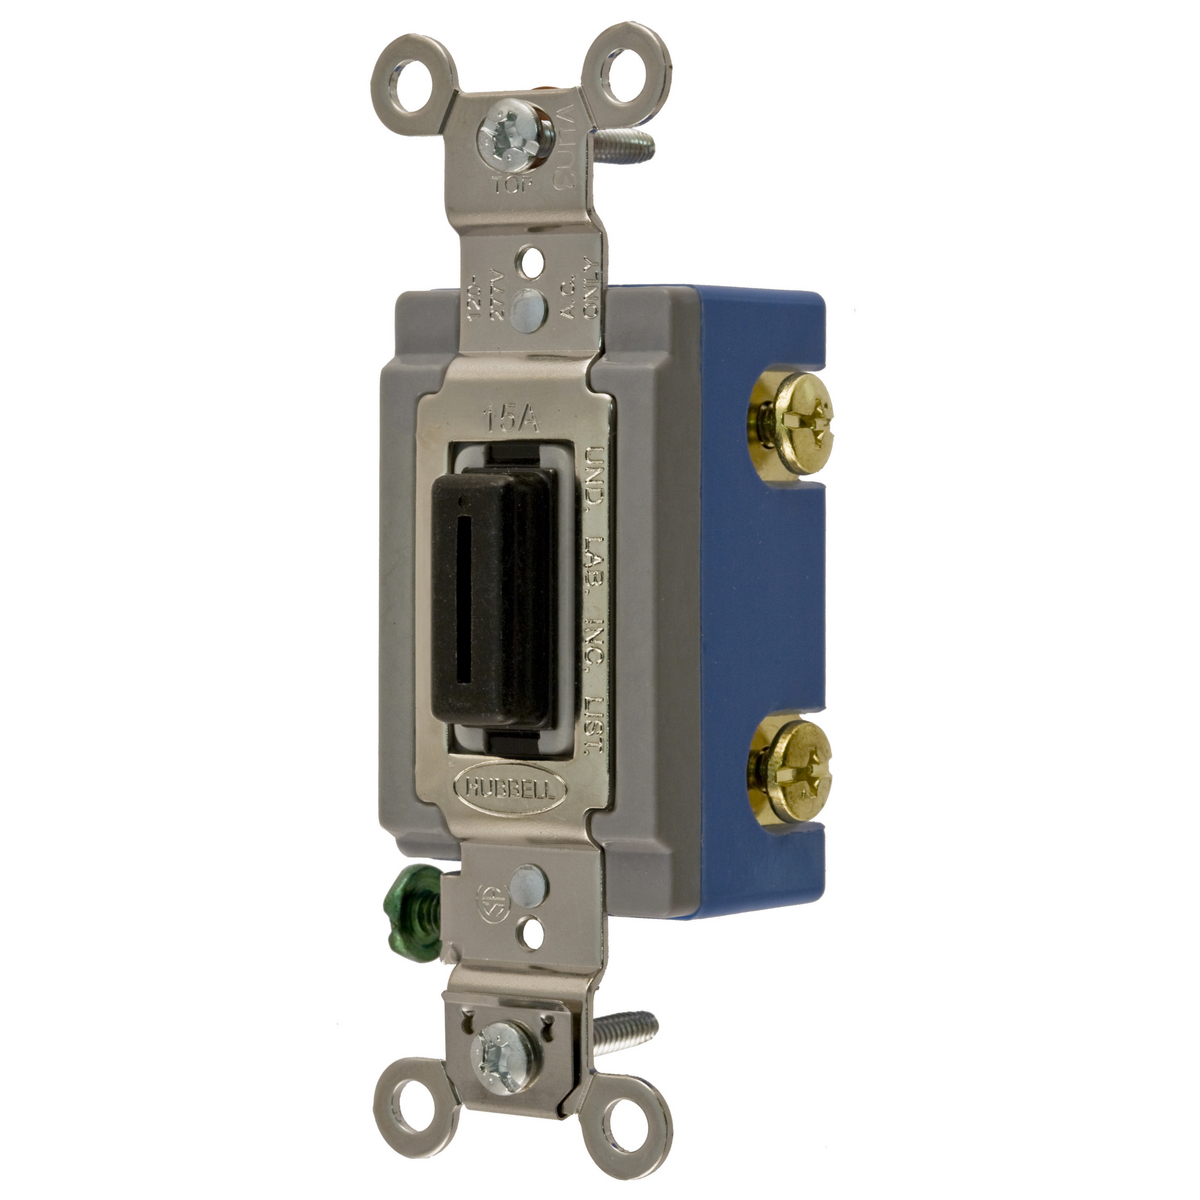 Ge Lighting Systems Electrical Wholesale Supply High Voltage Vacuum Circuit Breaker With Lateral Operating Mechanism2 Hubw Hbl1201l Sp 15a Lkg Ac Sw